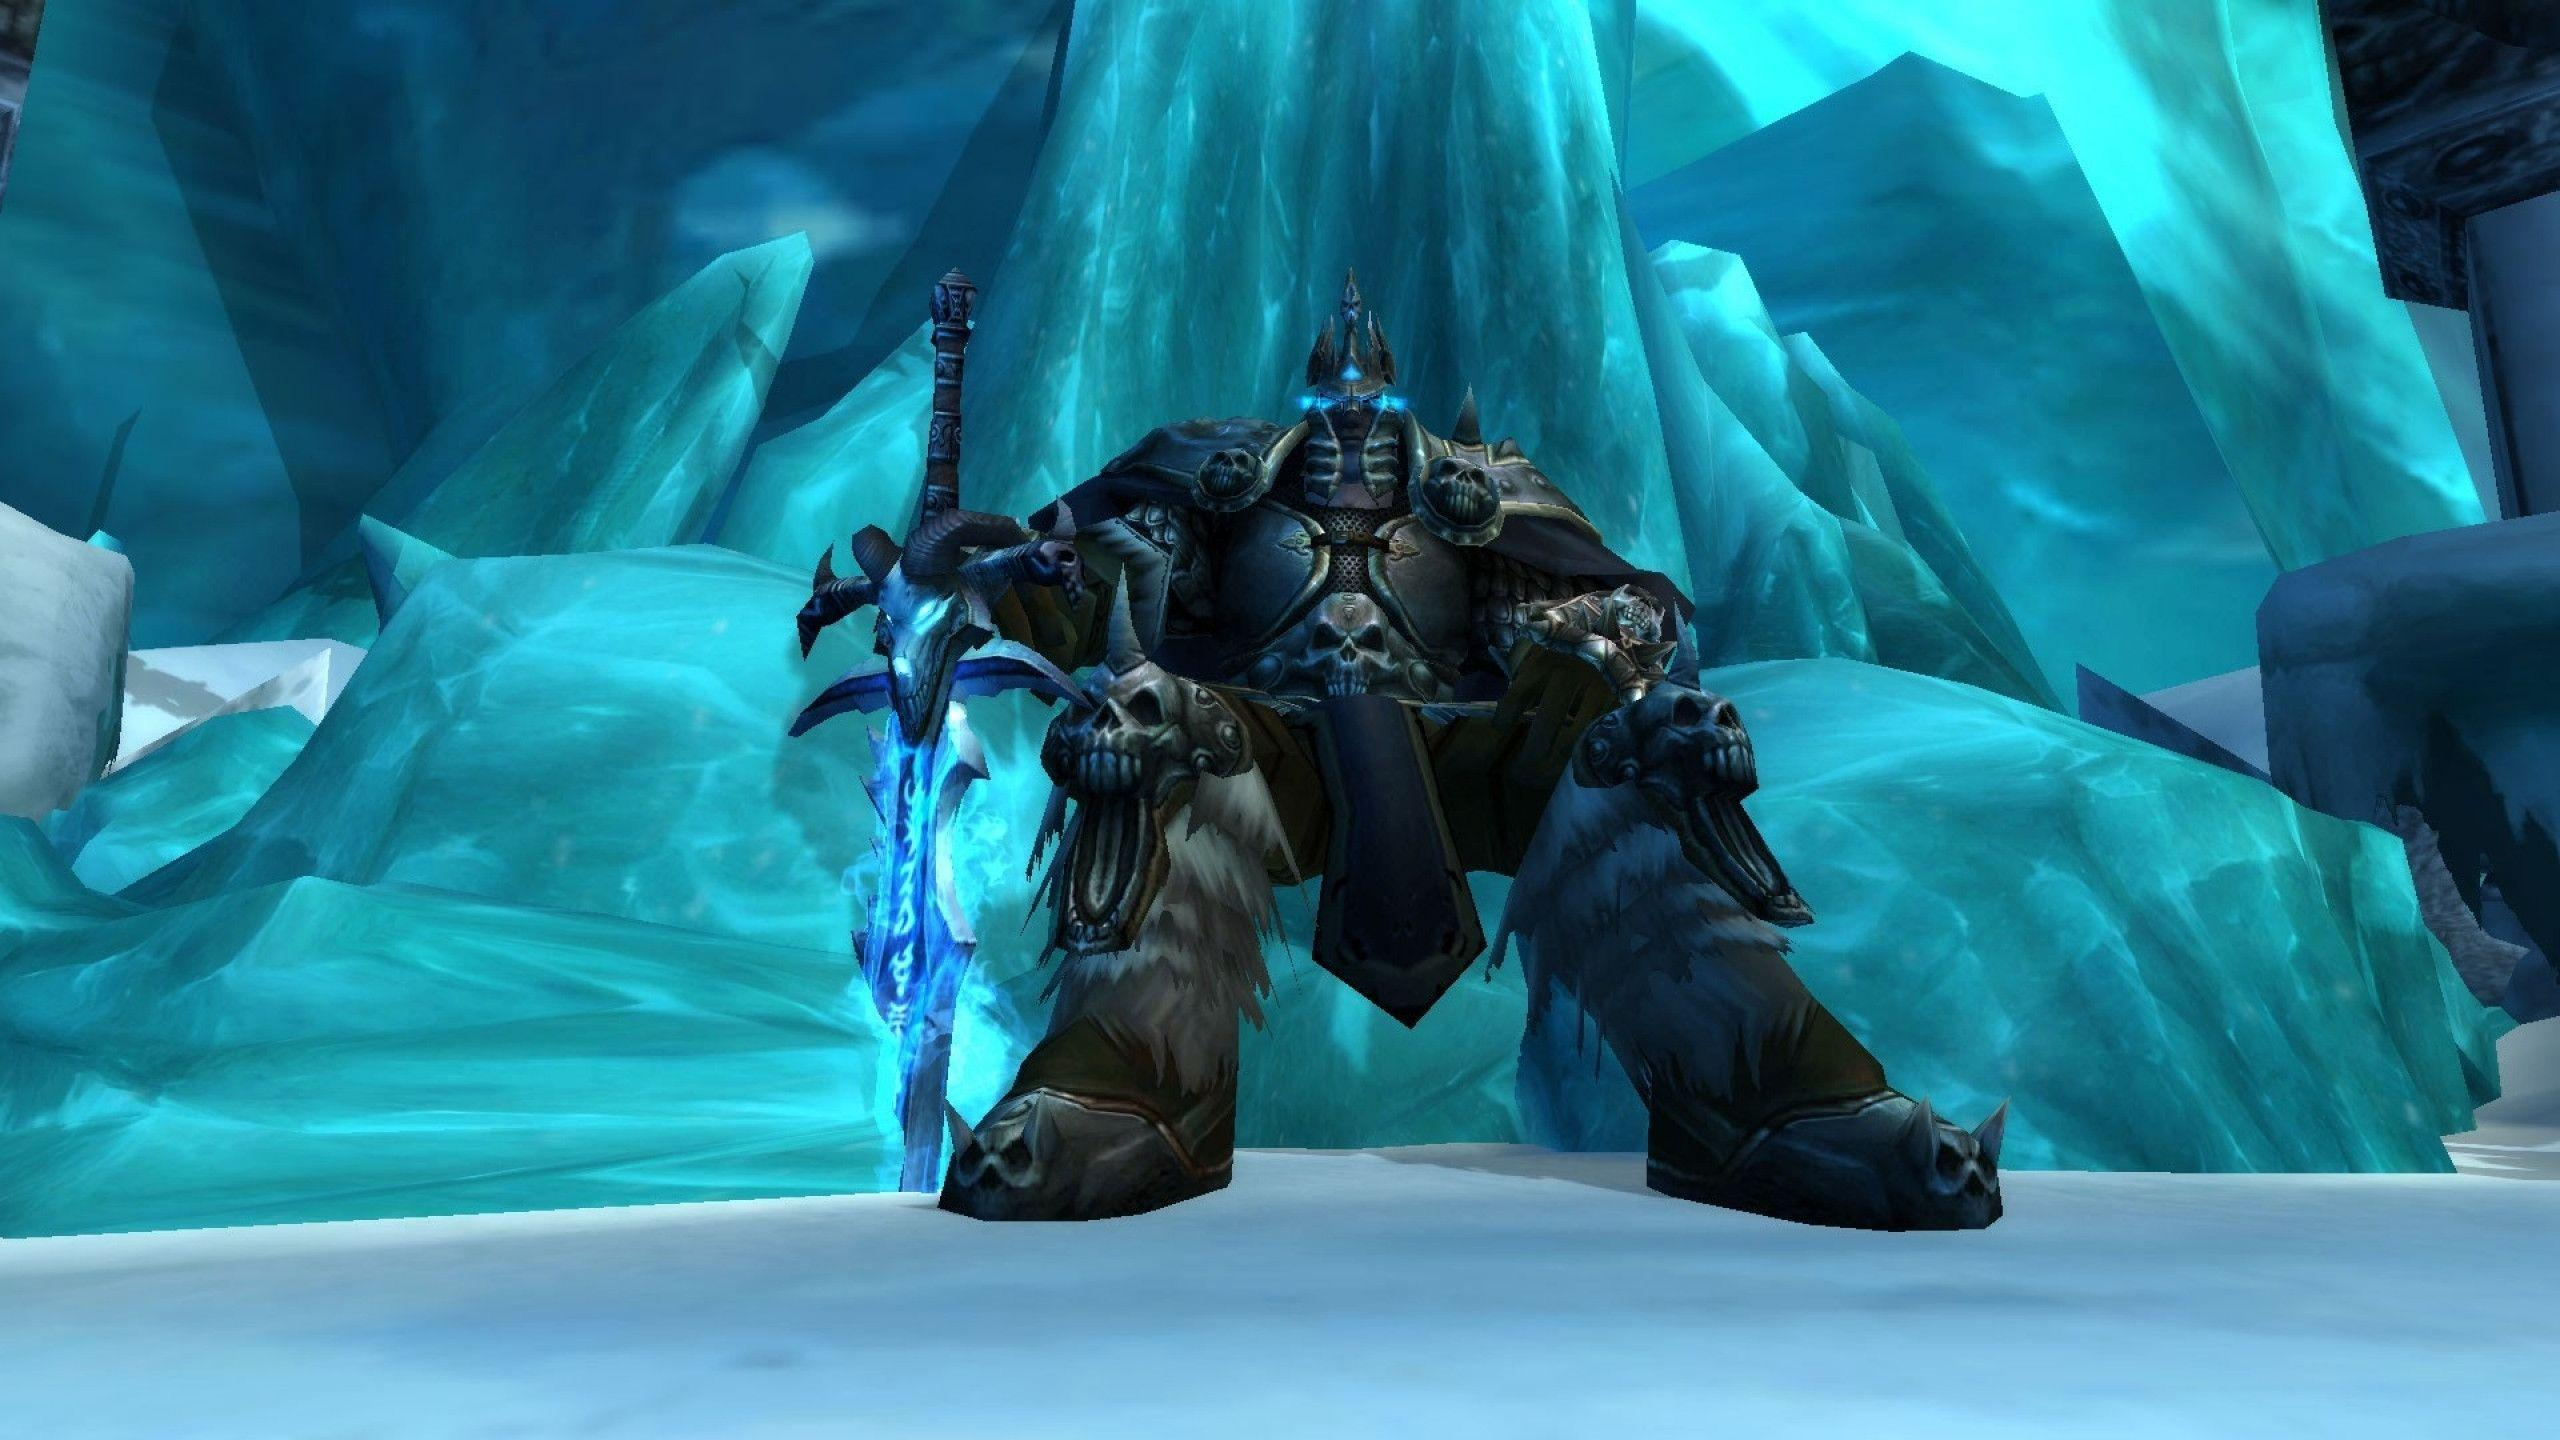 Lich King Warcraft Artwork Video Games Wallpapers – Games Wallpapers